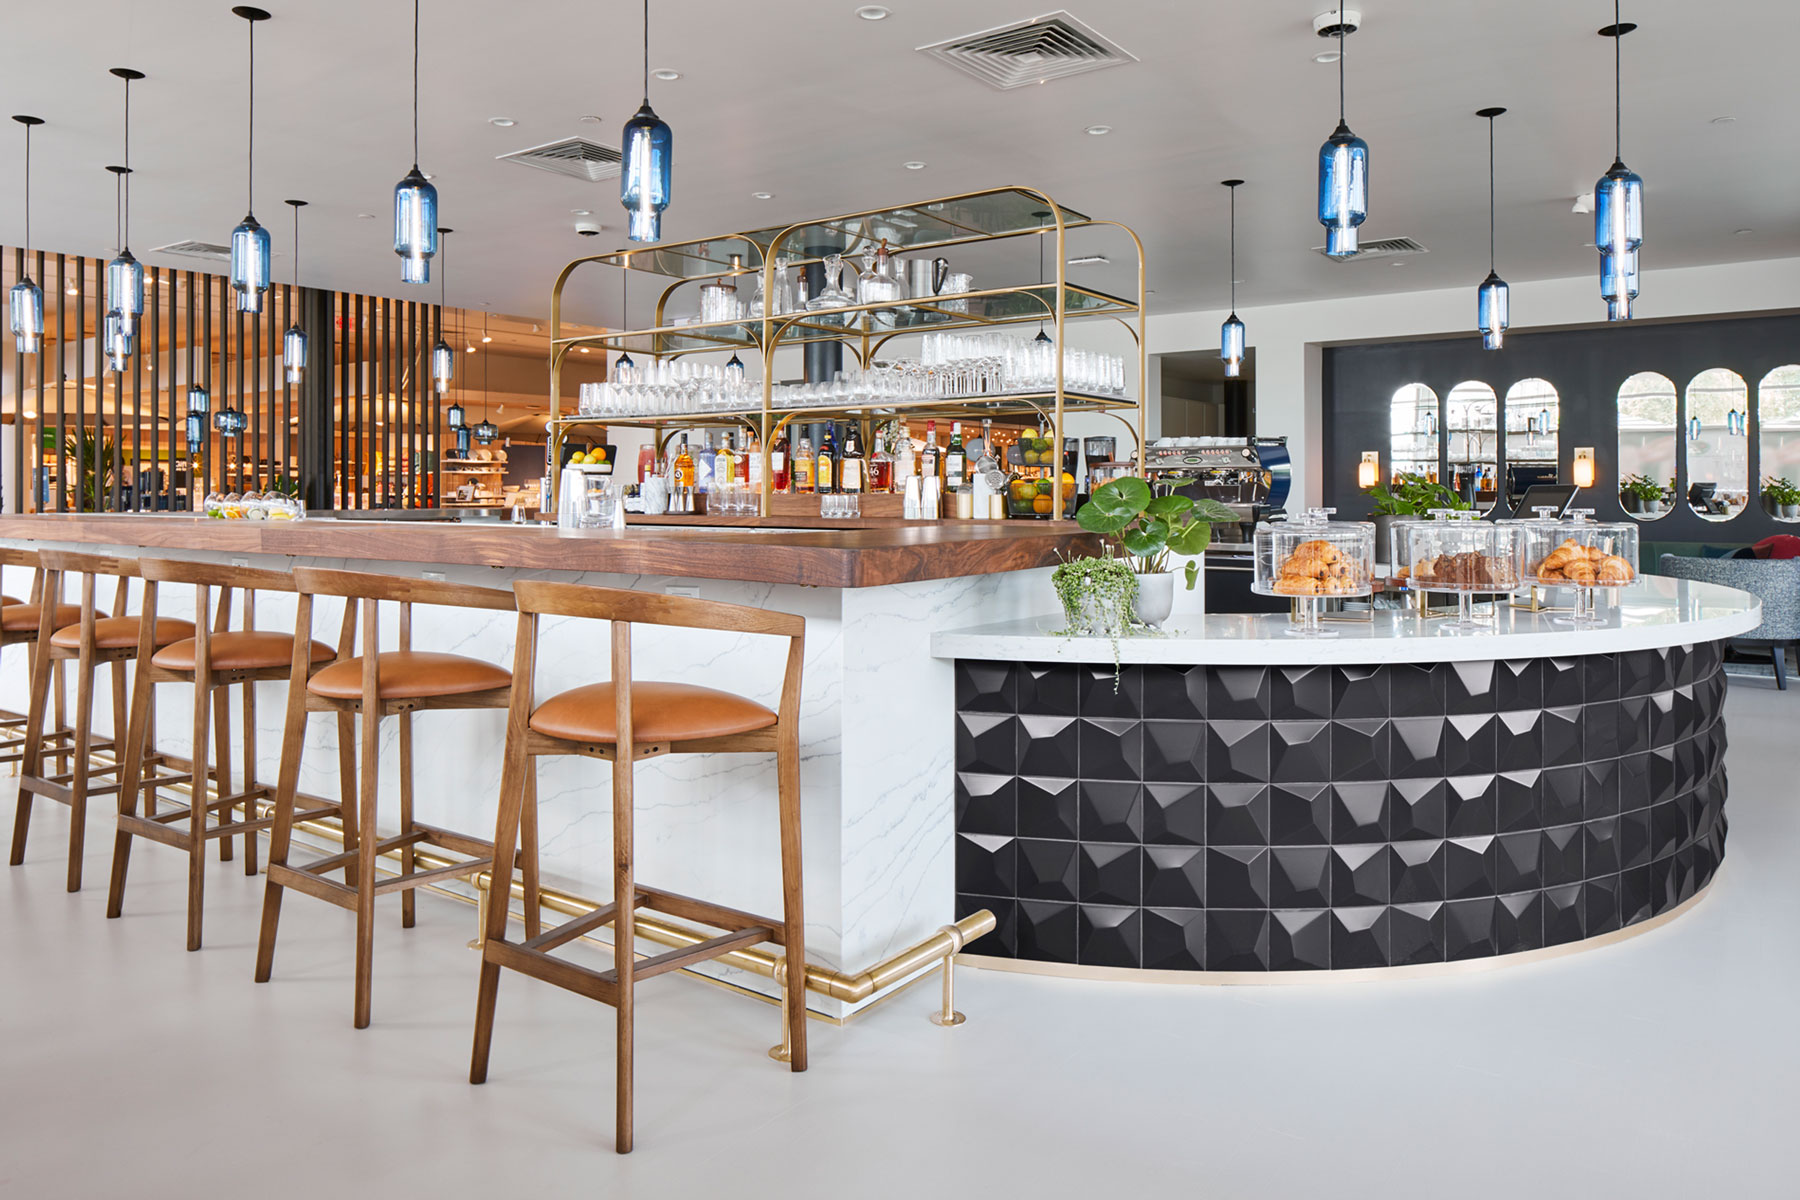 Crate & Barrel restaurant - The Table at Crate marble and butcher block countertop bar